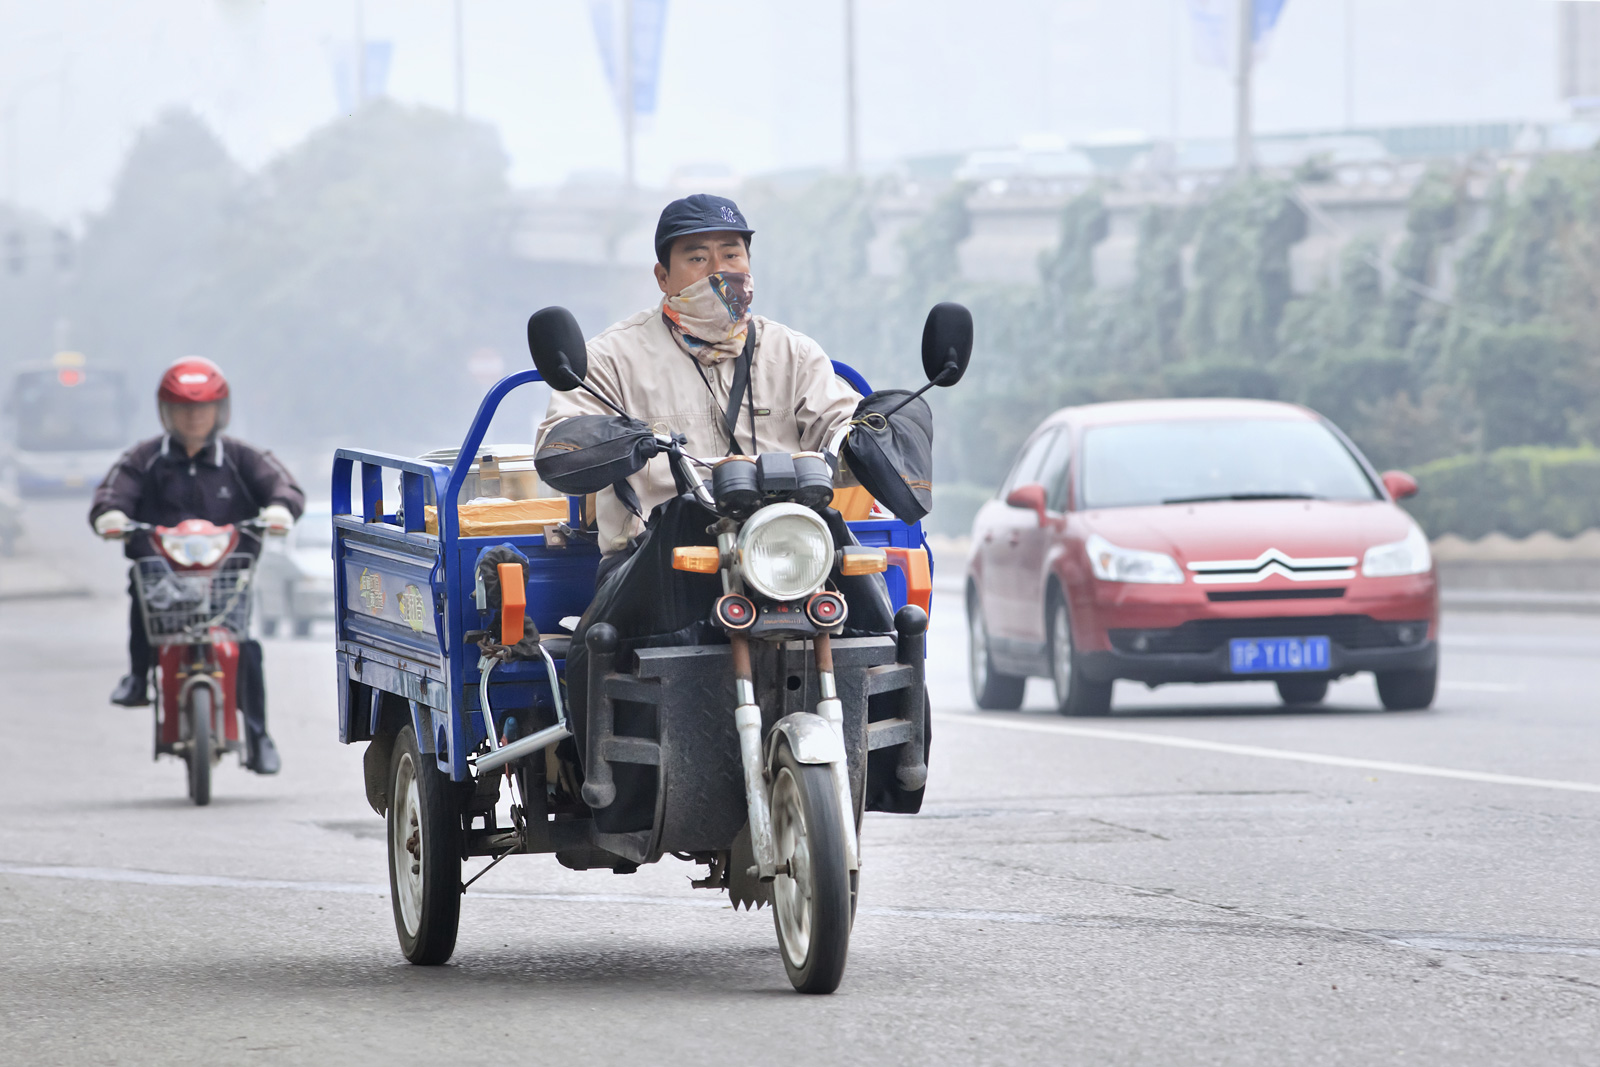 motorcycle driver with mask